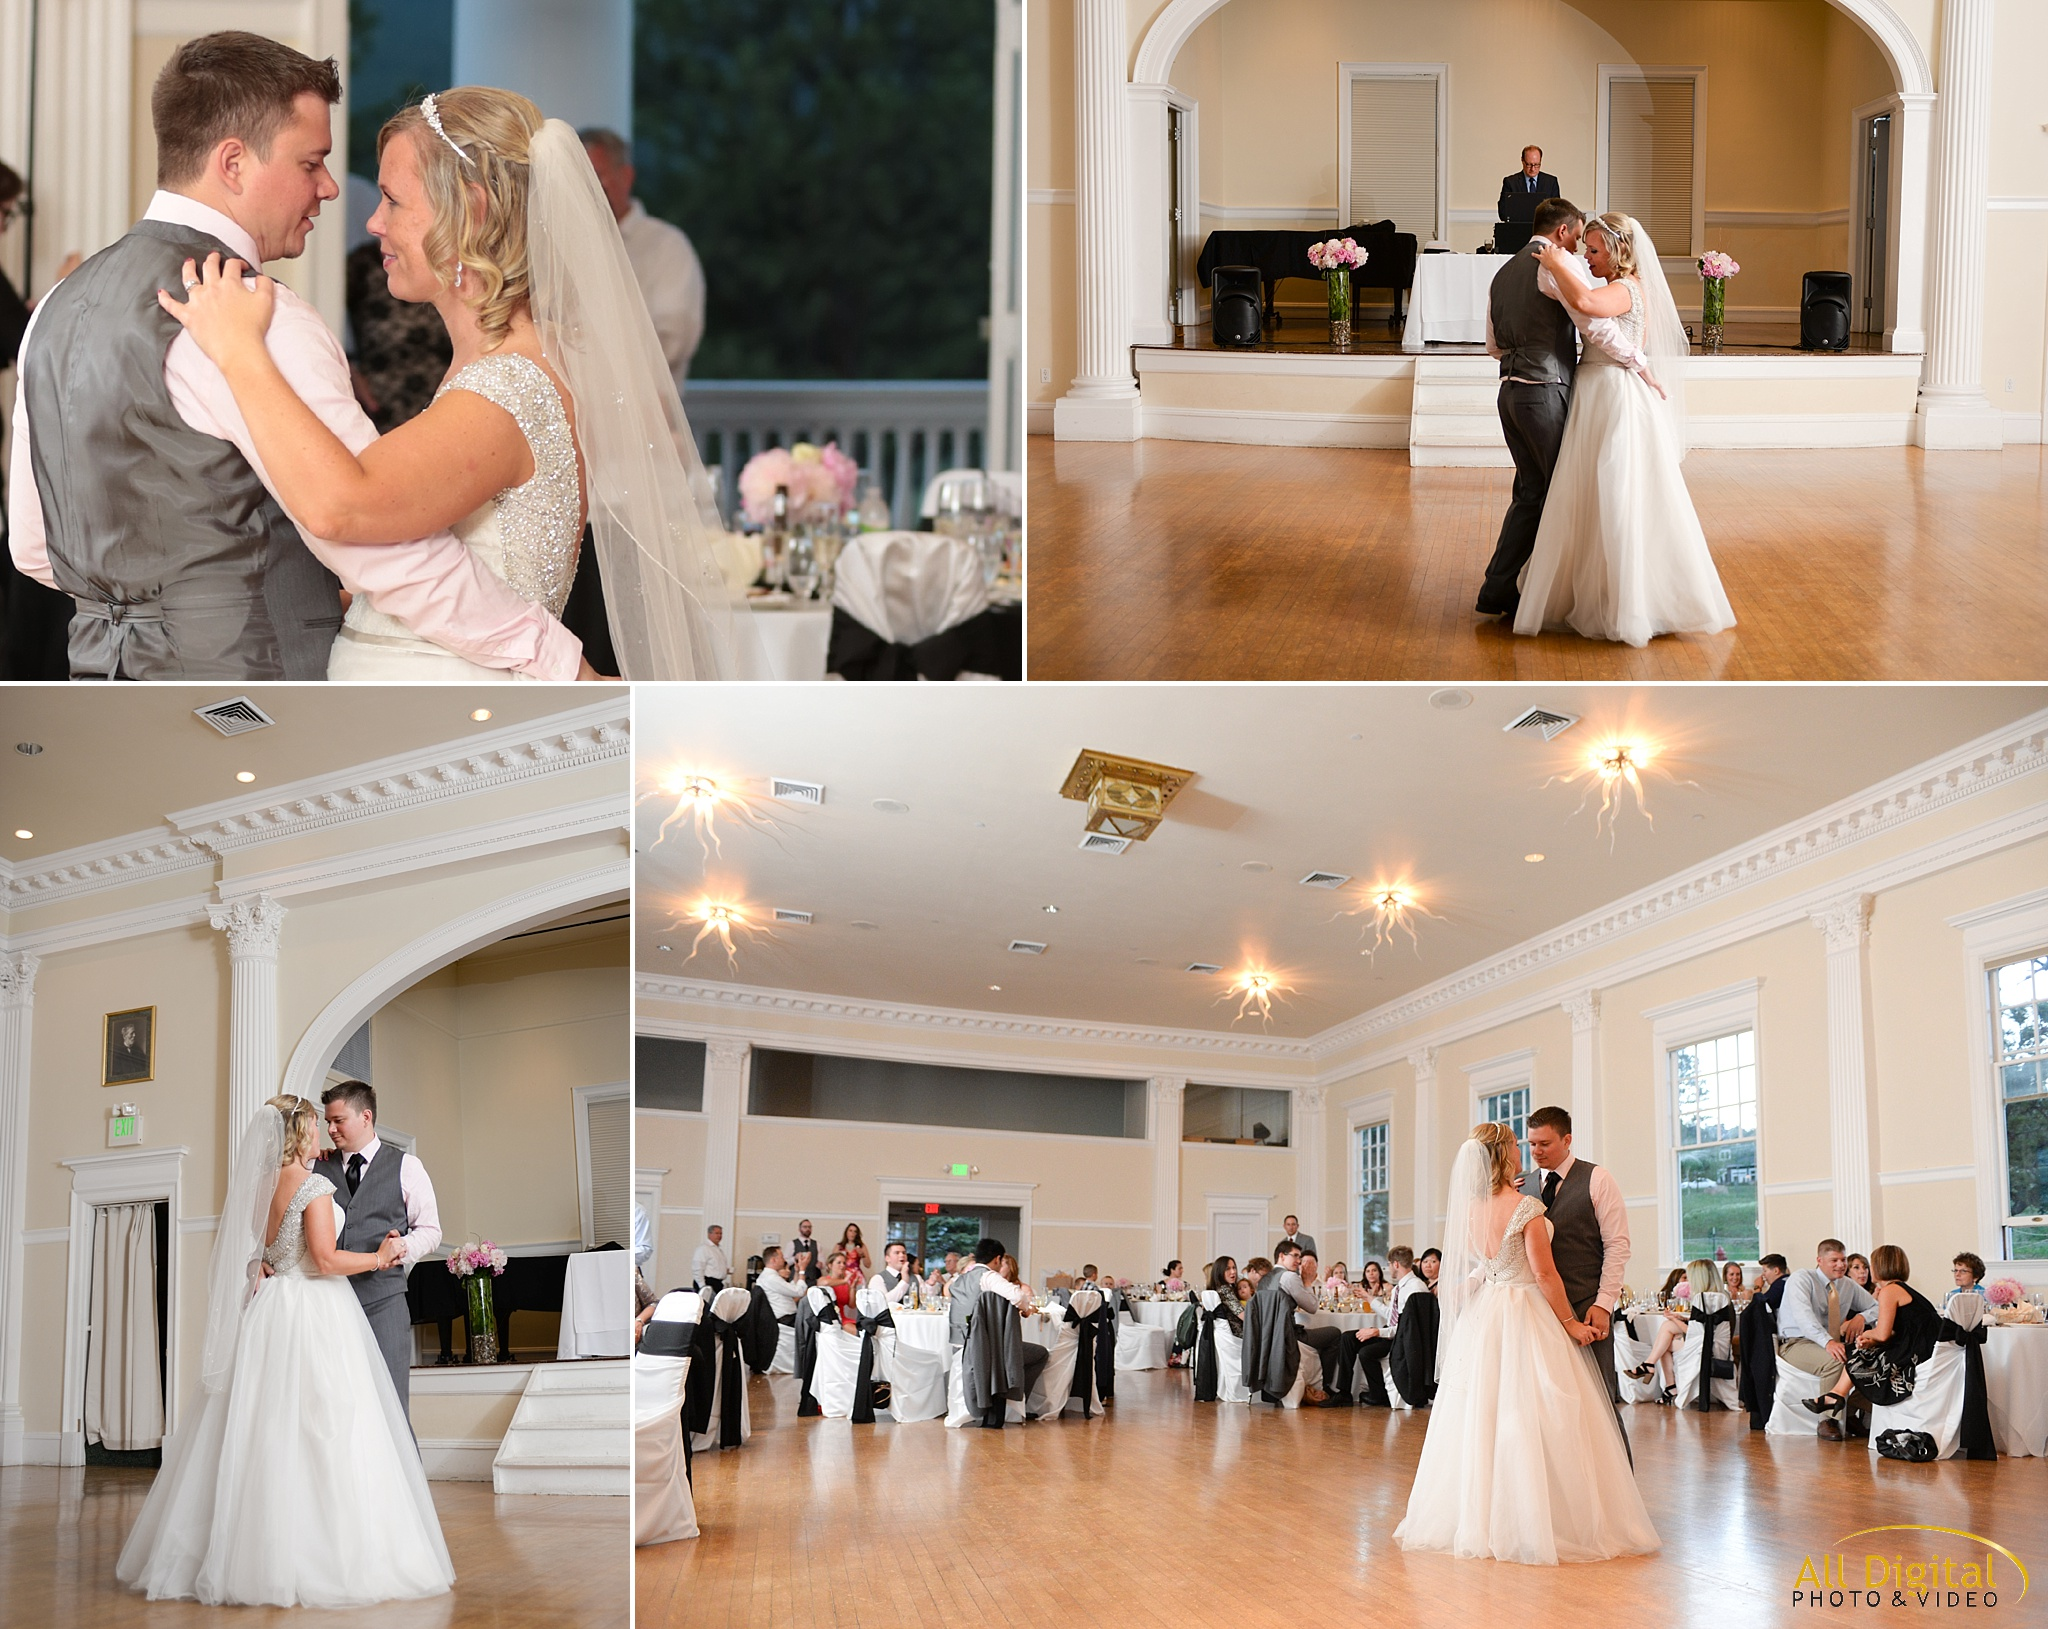 Alison & Brian's First Dance at the Stanley Hotel in Estes Park, Colorado.